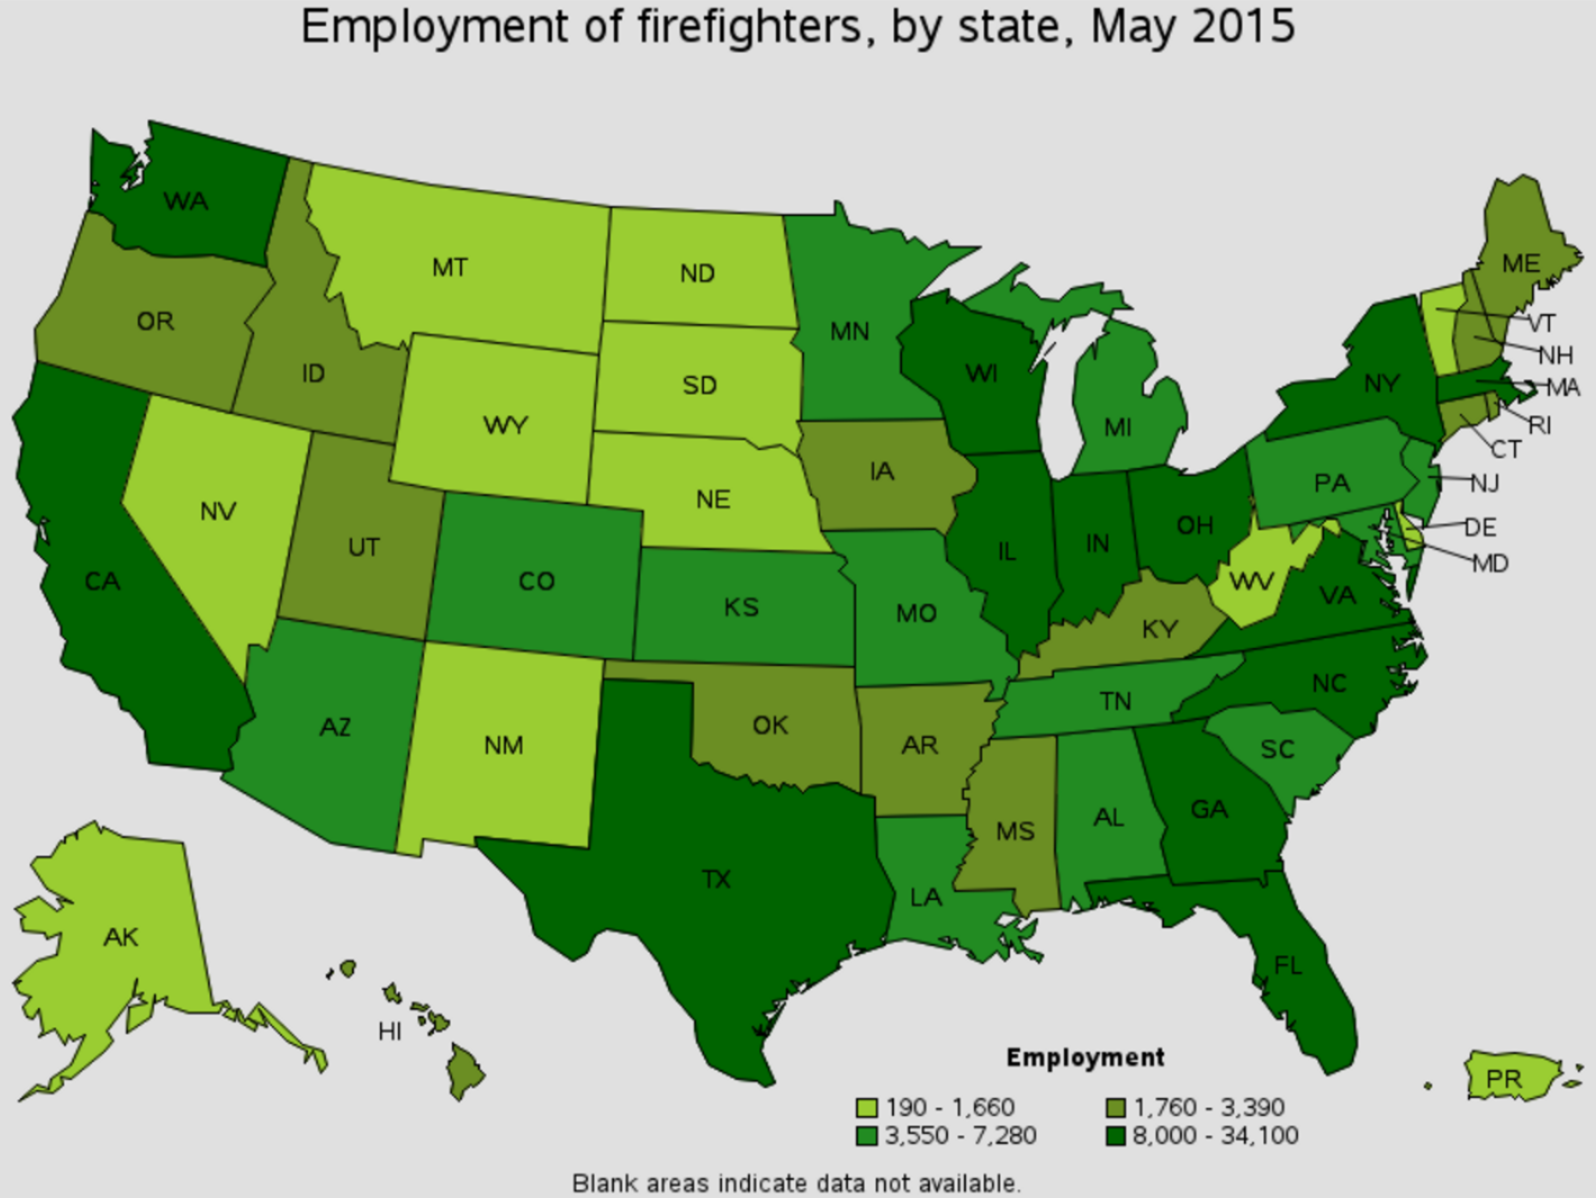 firefighter job outlook by state Mayfield Kentucky